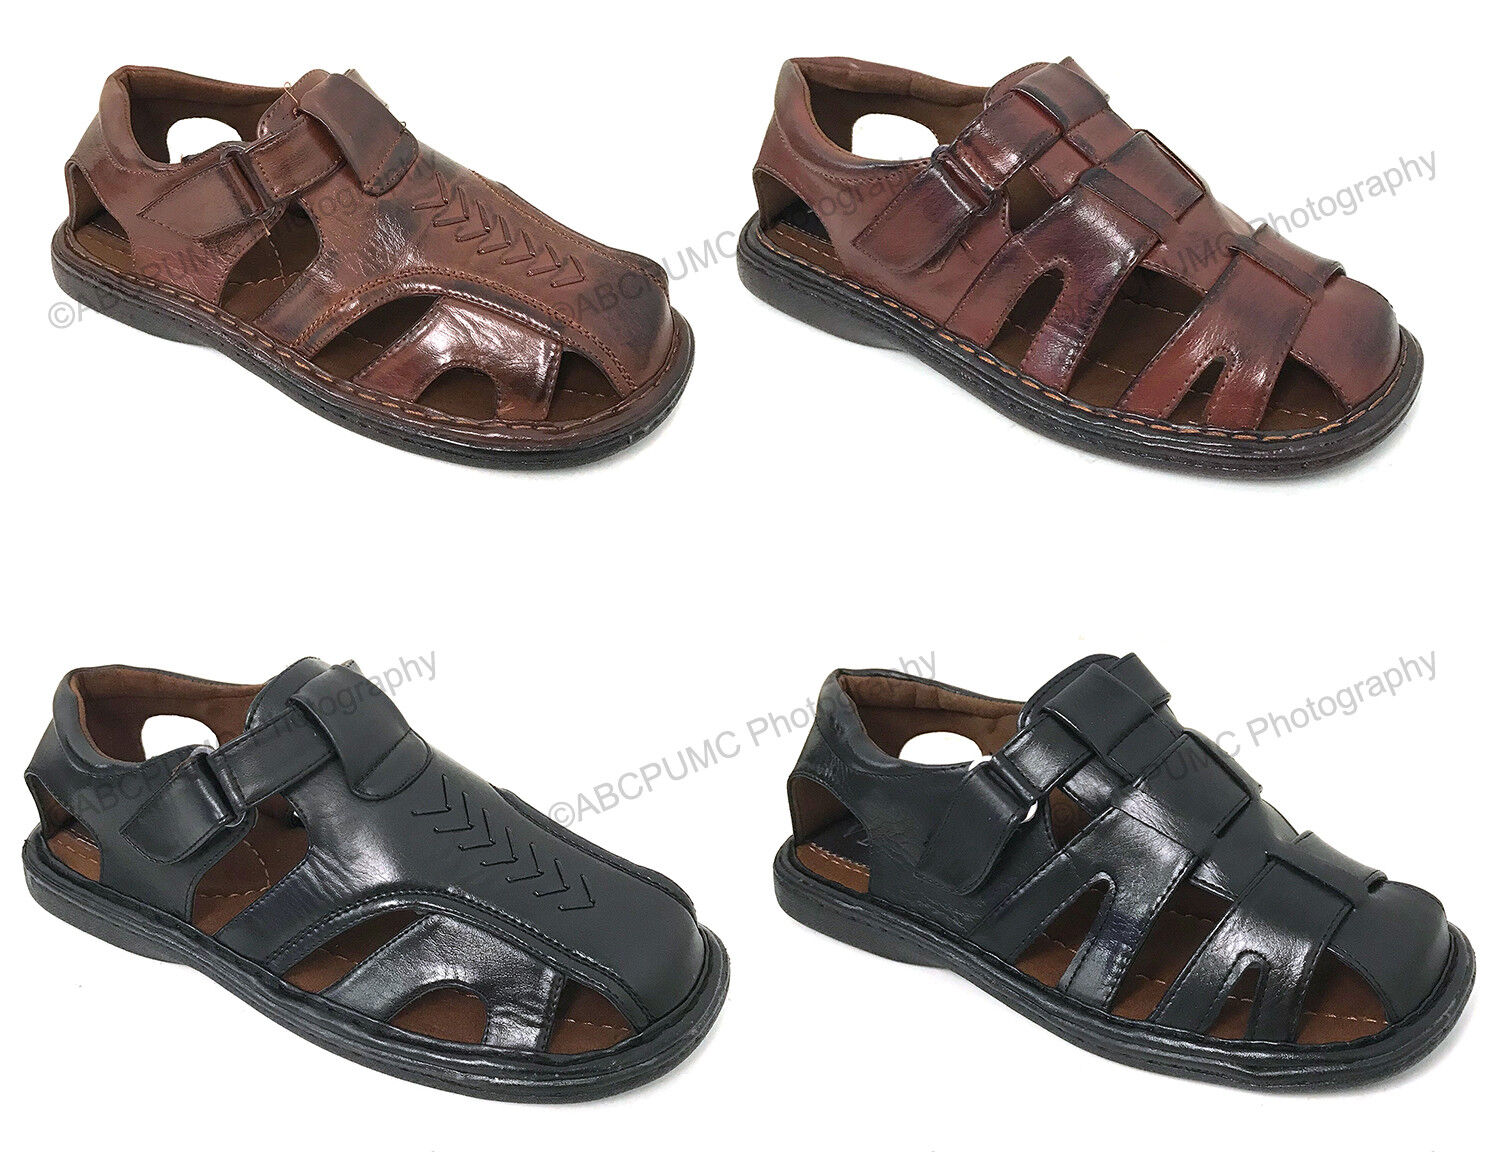 Brand New Men's Fisherman Sandals Closed Toe Adjustable Buck